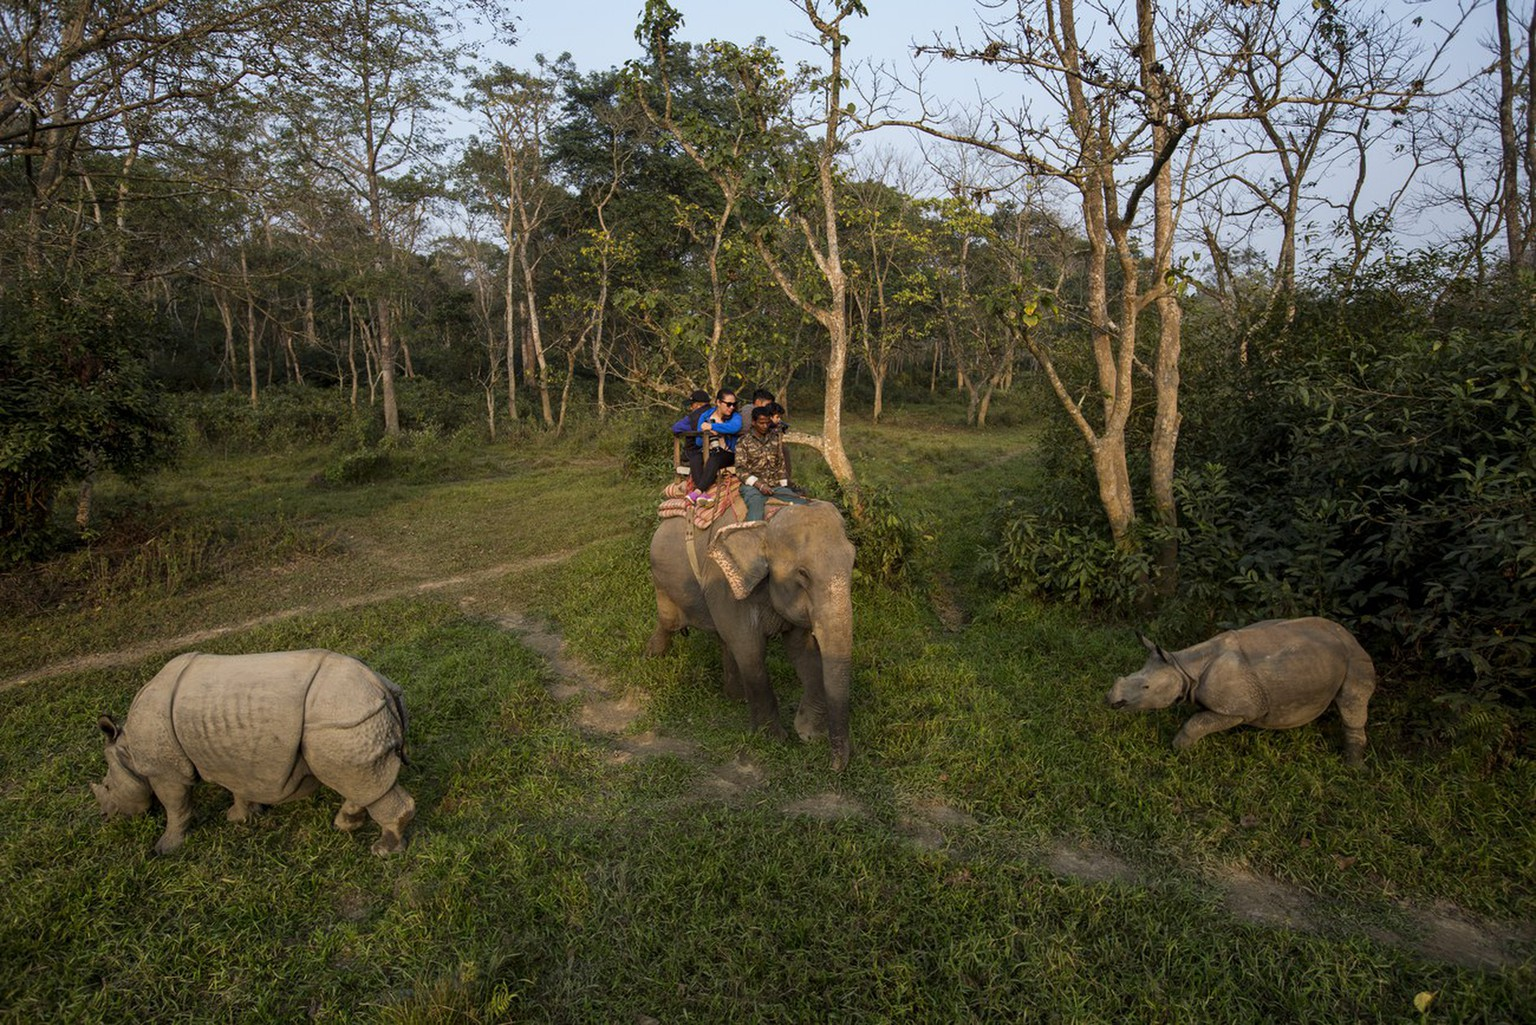 epa06405382 Tourists look at one-horned rhinos during an elephant ride as they visit Chitwan National Park, in Chitwan district, Nepal, 25 December 2017.  EPA/NARENDRA  SHRESTHA